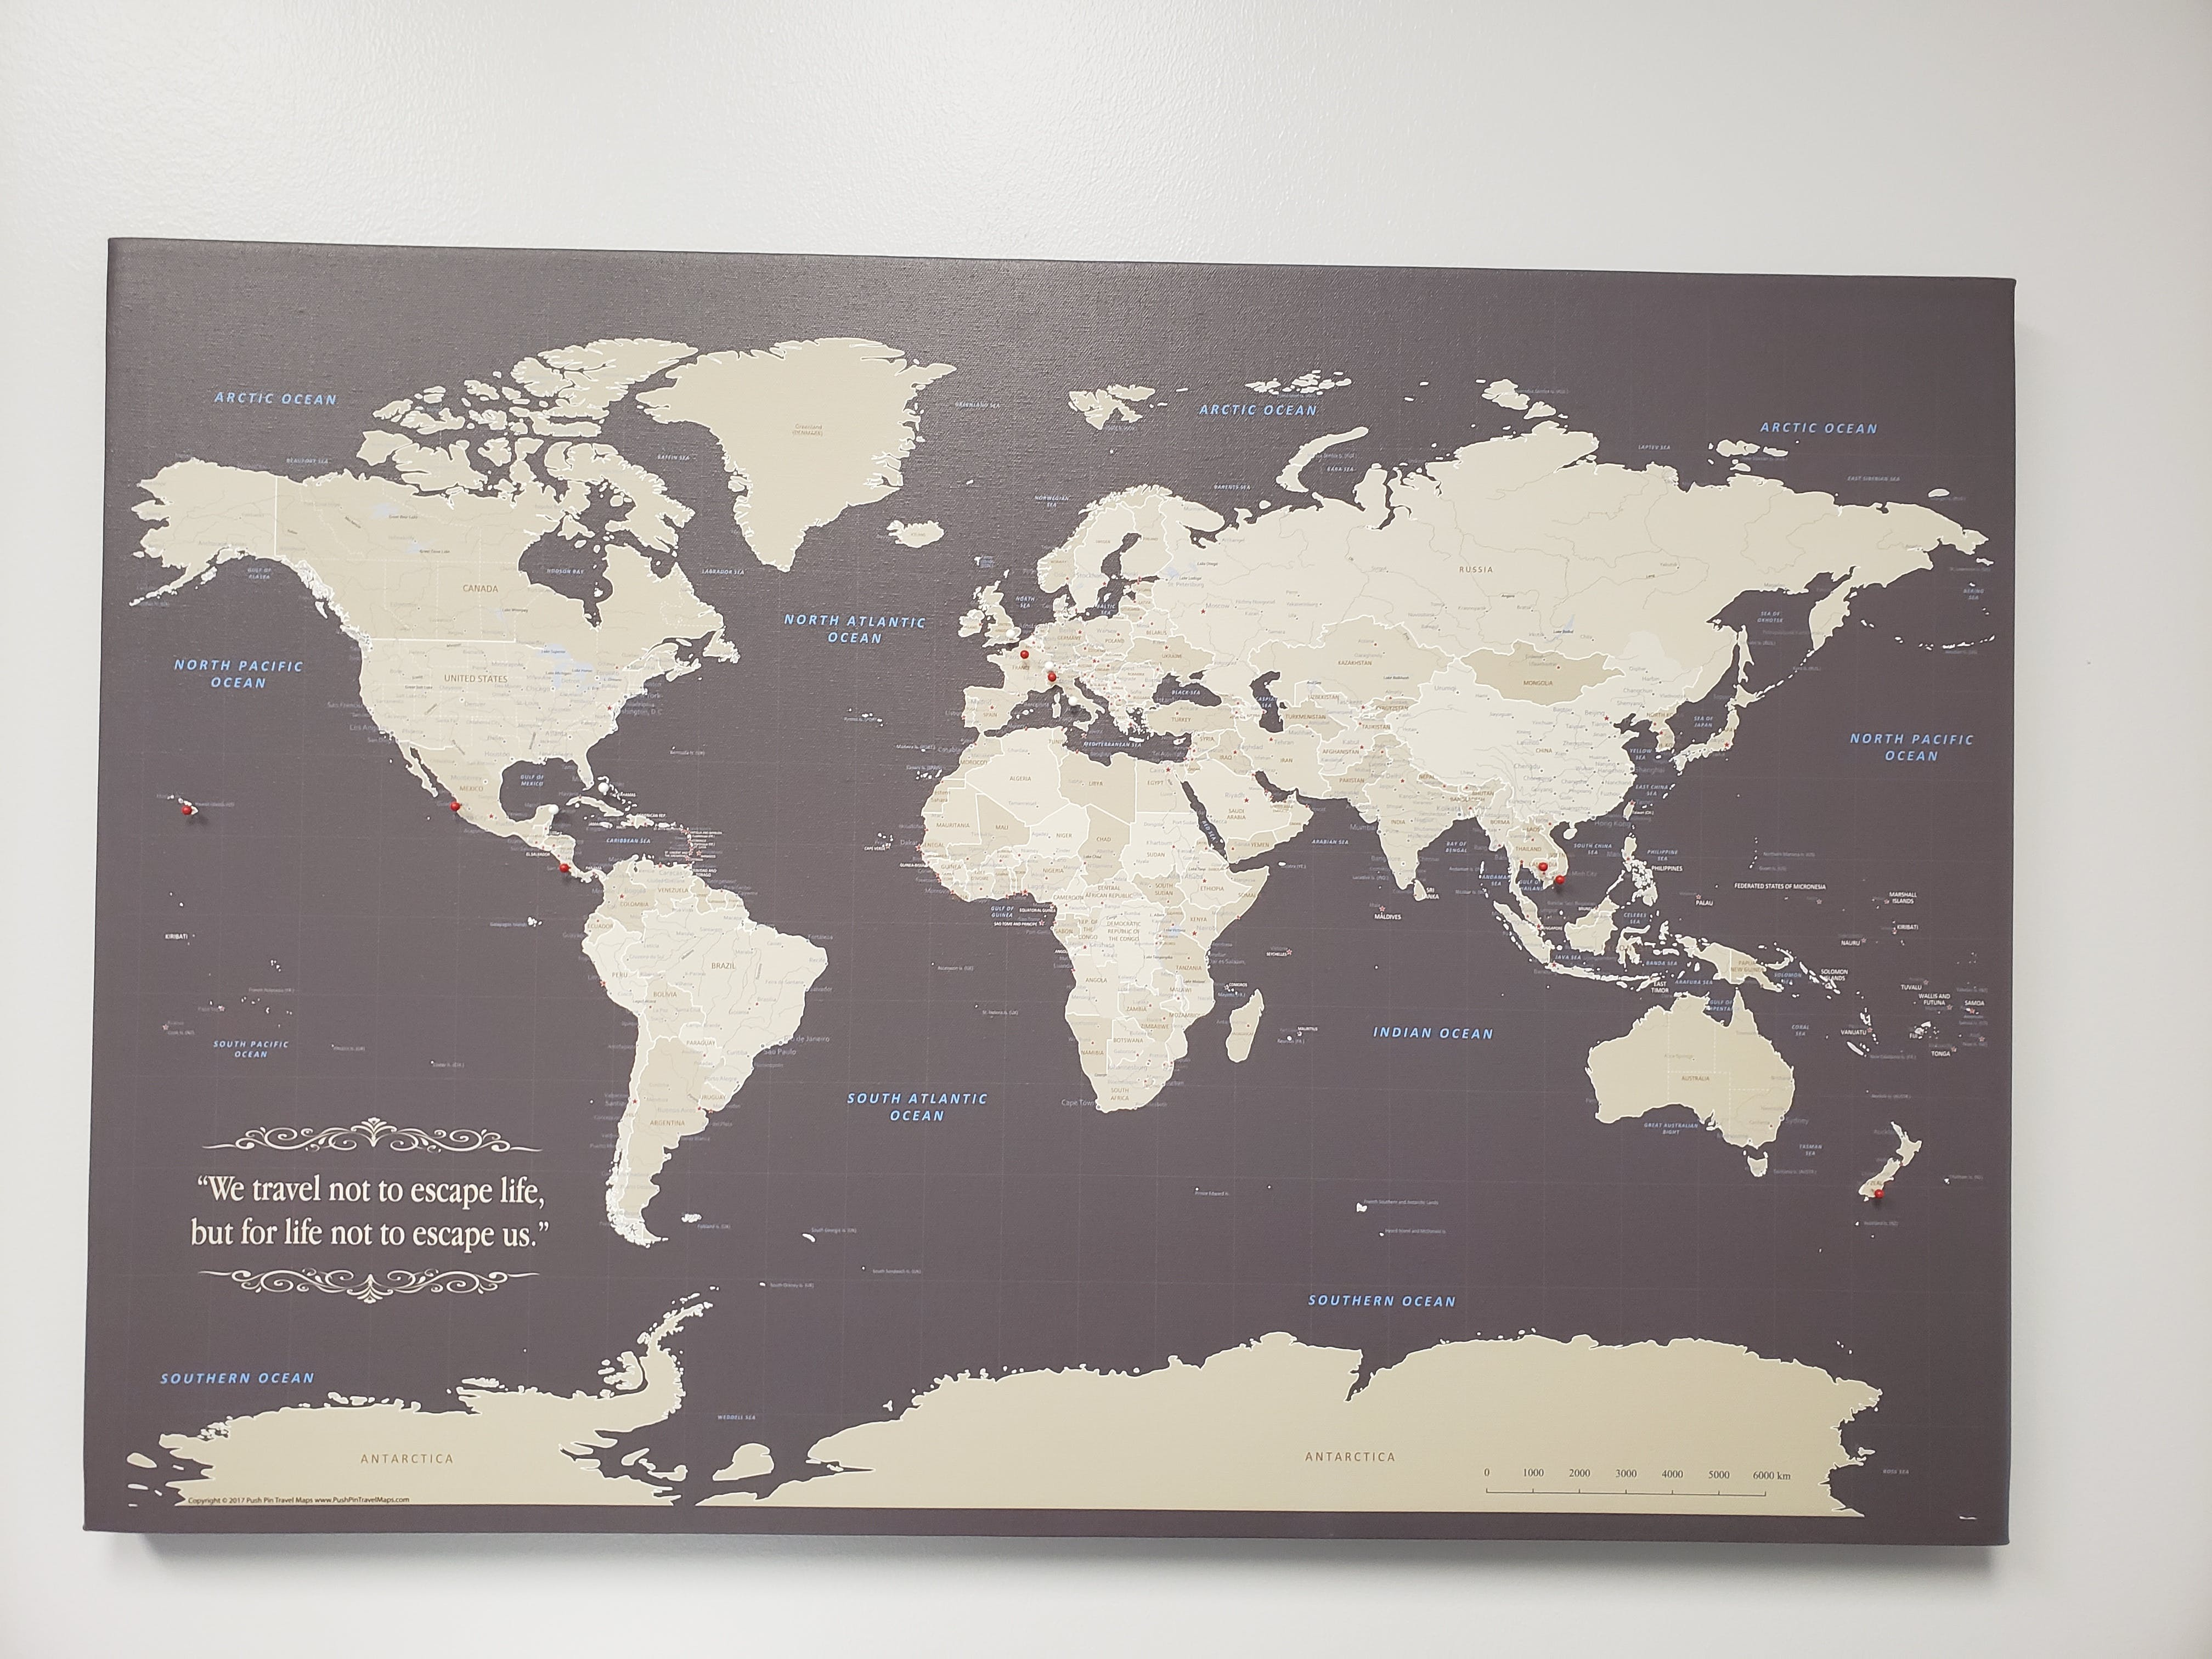 Gallery Wrapped - Earth Toned World Travel Map with pins